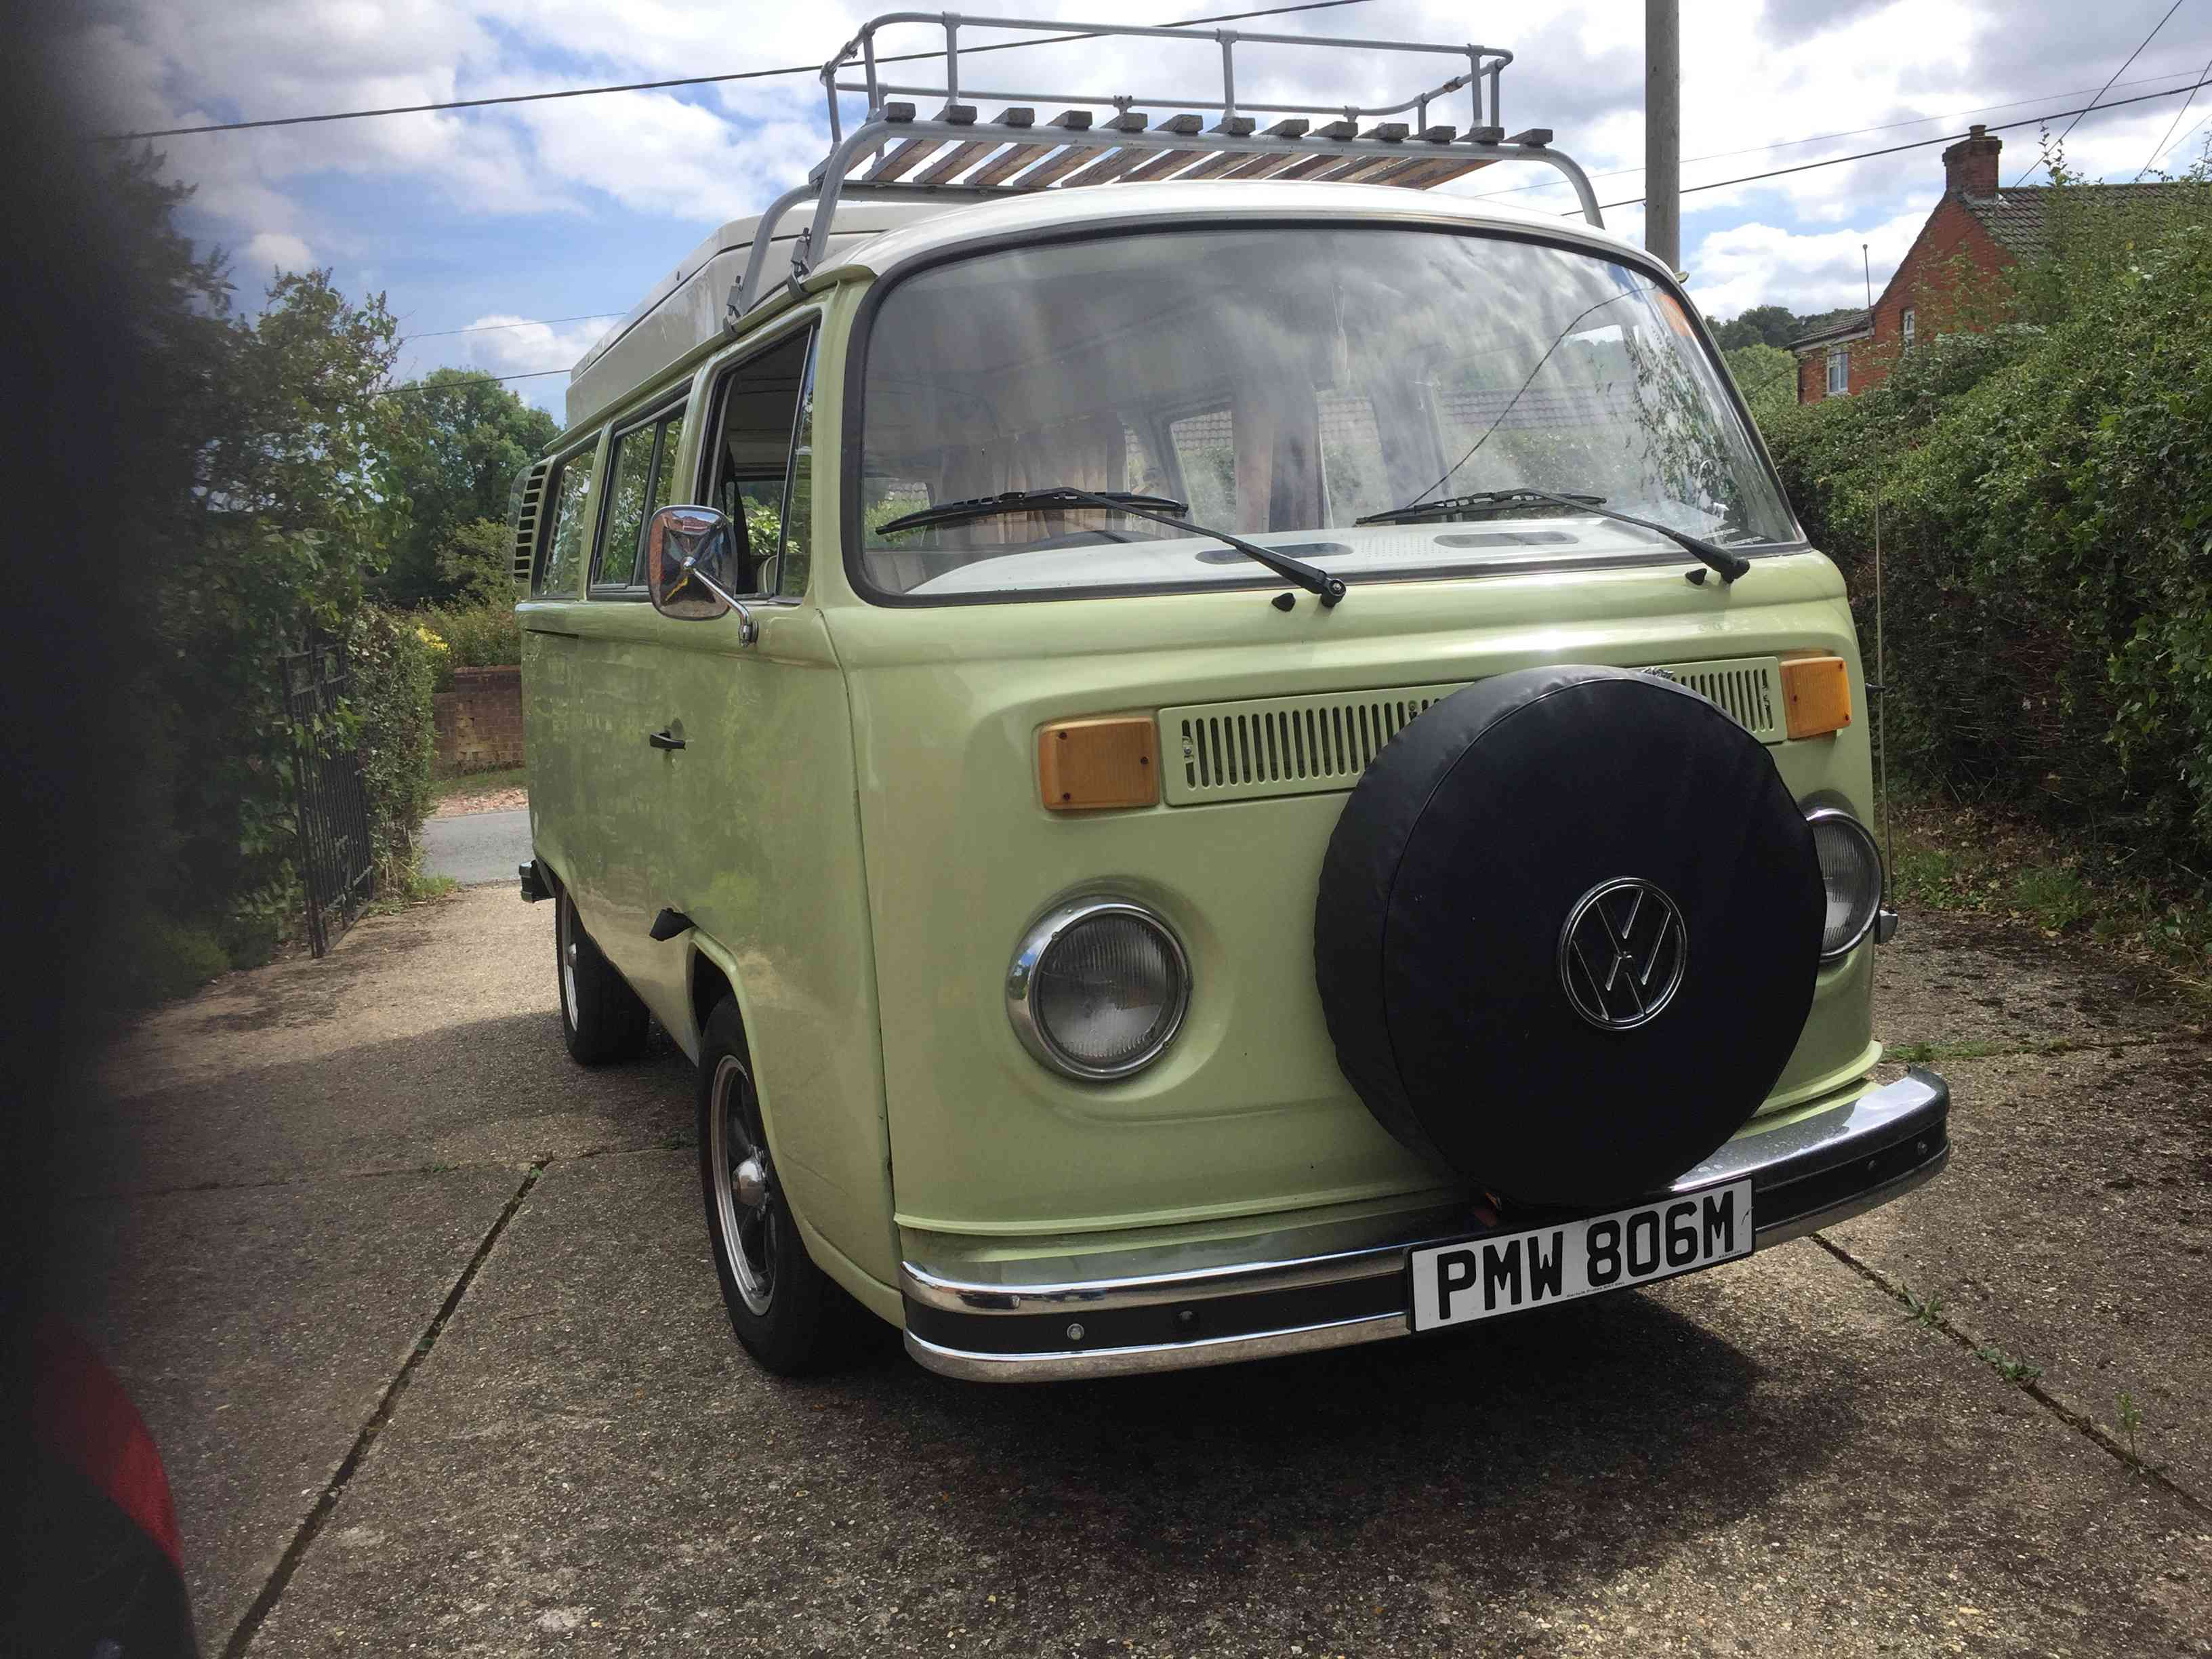 A VW T2 Classic Campervan called Olivia and Olivia for hire in westbury, Wiltshire